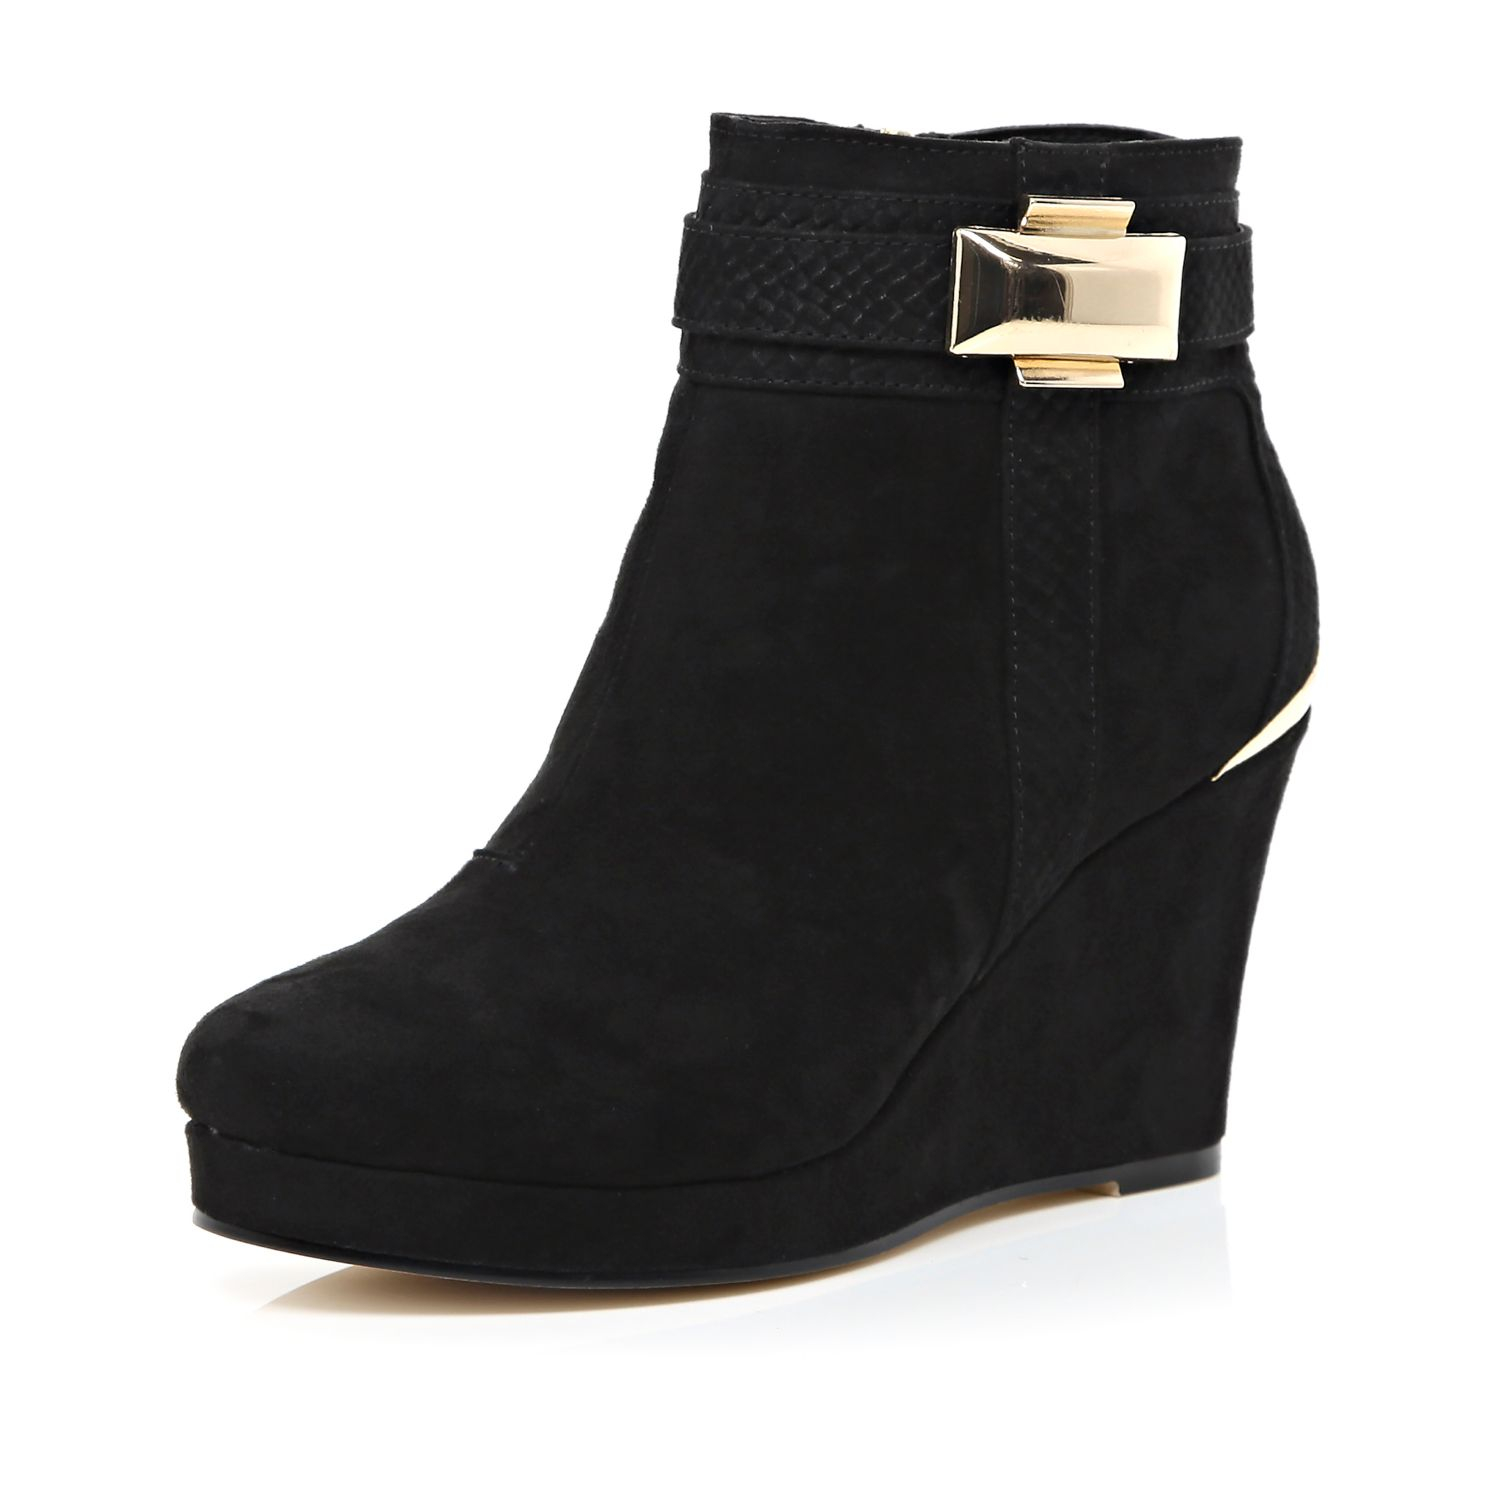 river island black wedge boots | Gommap Blog